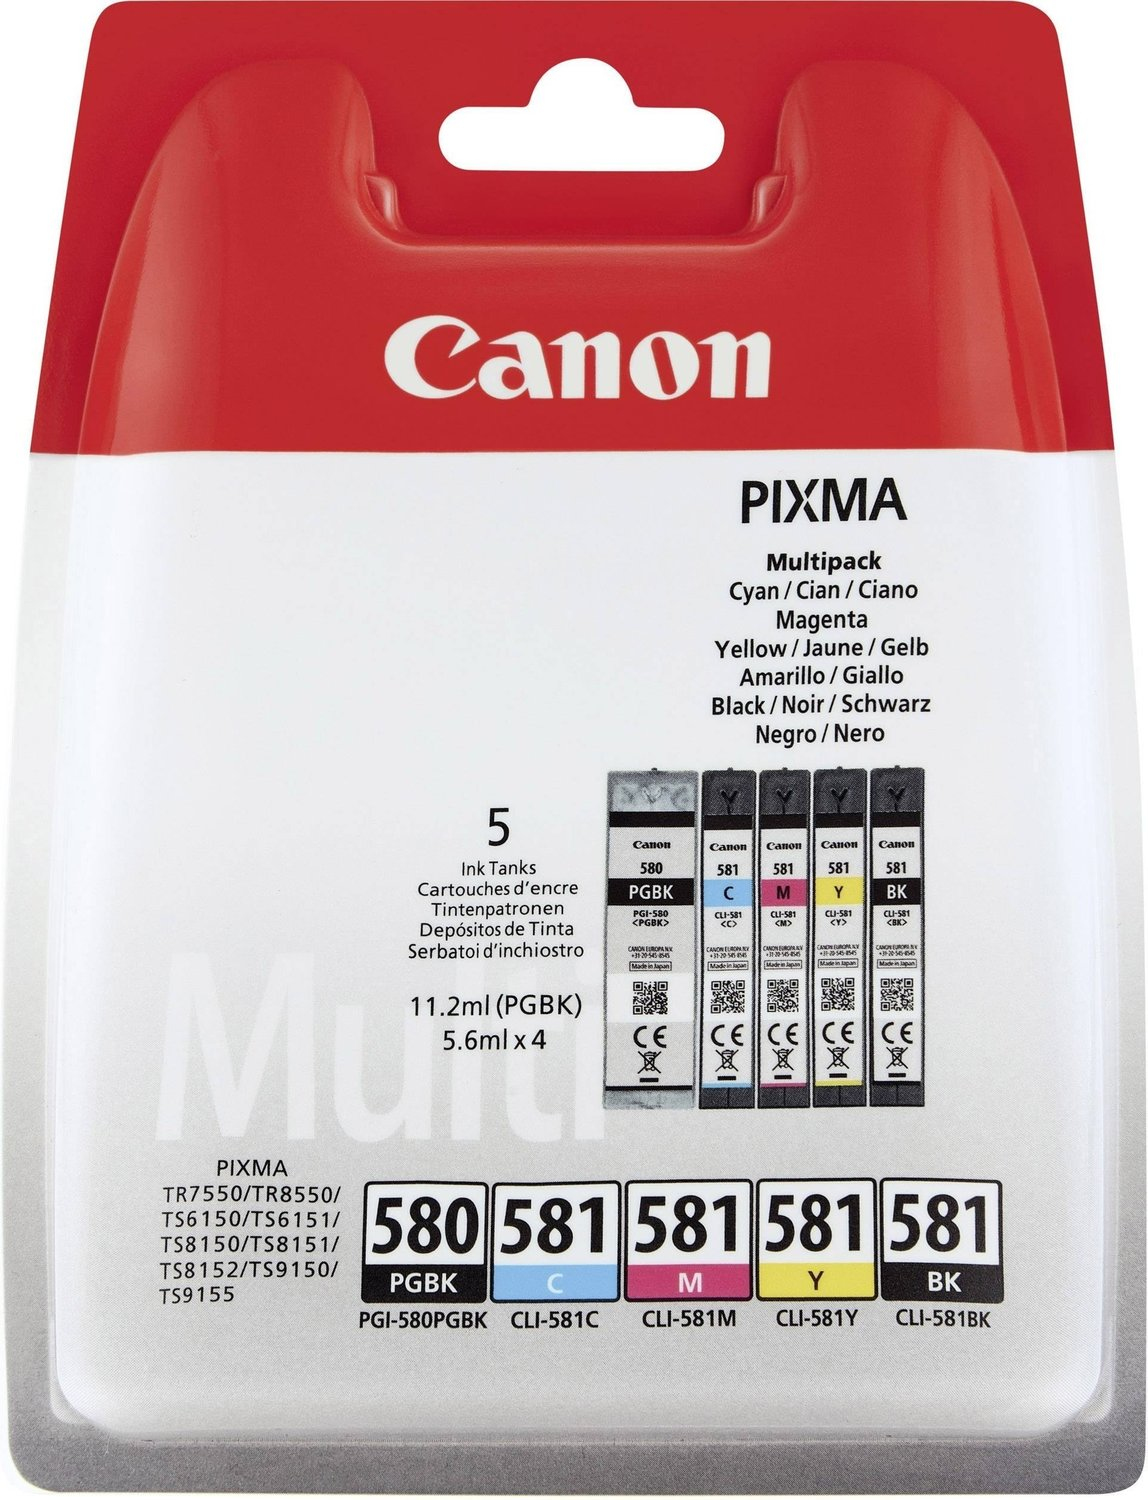 Canon PGI-580 PGBK CLI-581 Black, Cyan, Magenta and Yellow Ink Cartridges - PGI 580 581 CMYK, 33.6ml